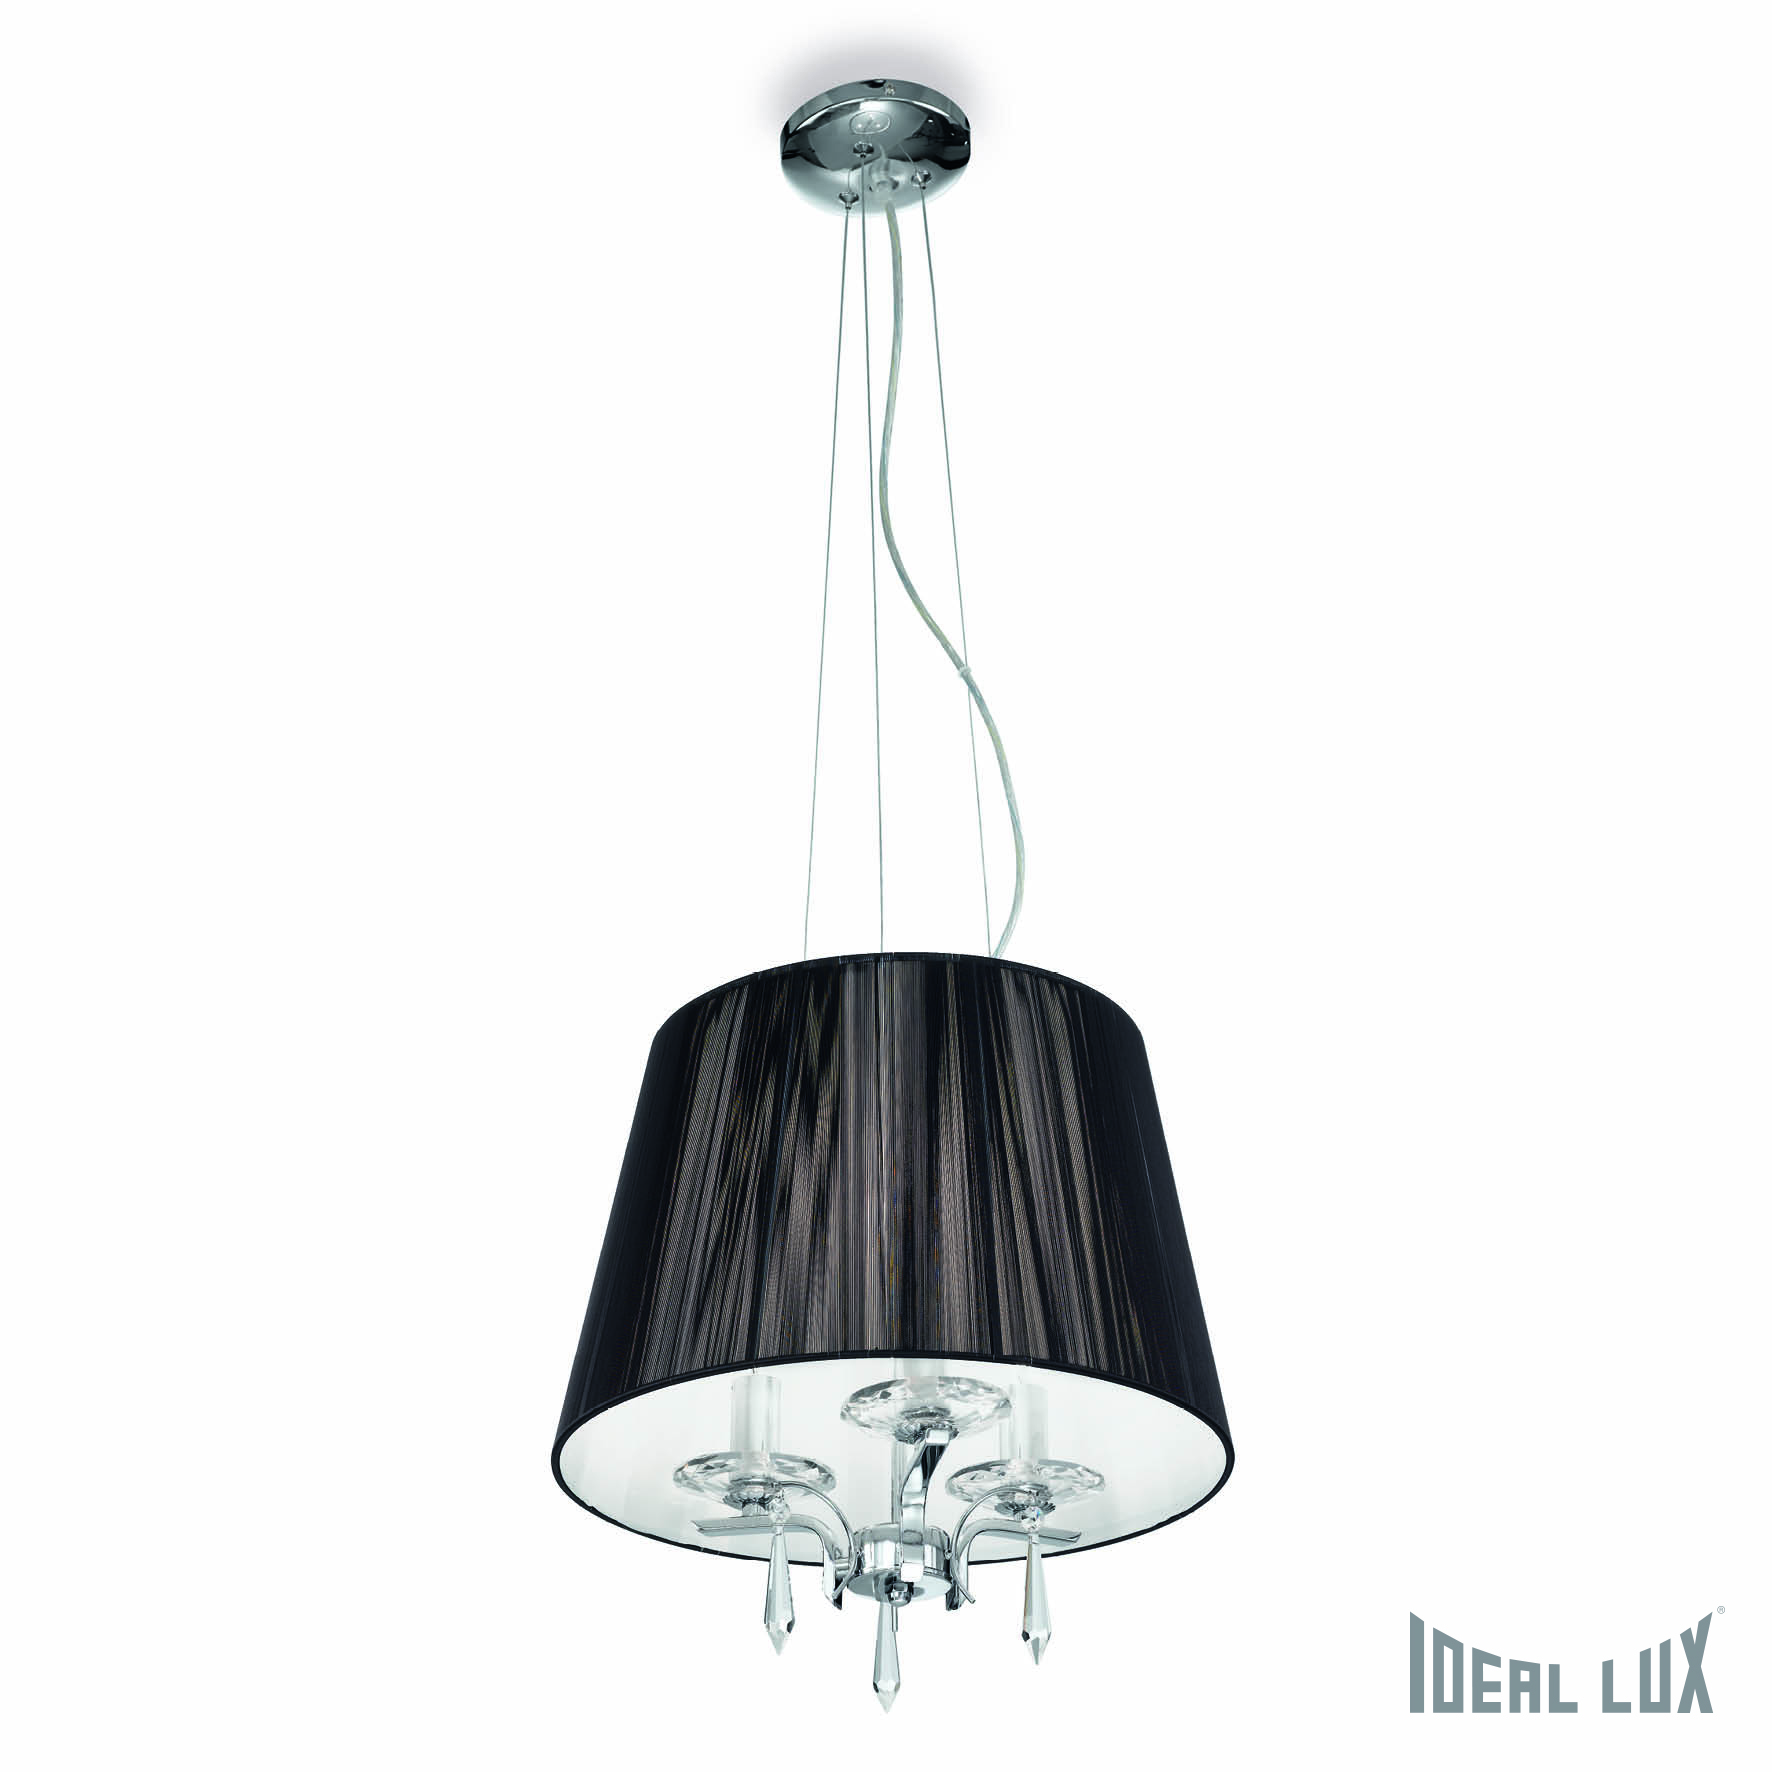 Светильник подвесной Ideal Lux Accademy ACCADEMY SP3 ideal lux люстра ideal lux le roy sp3